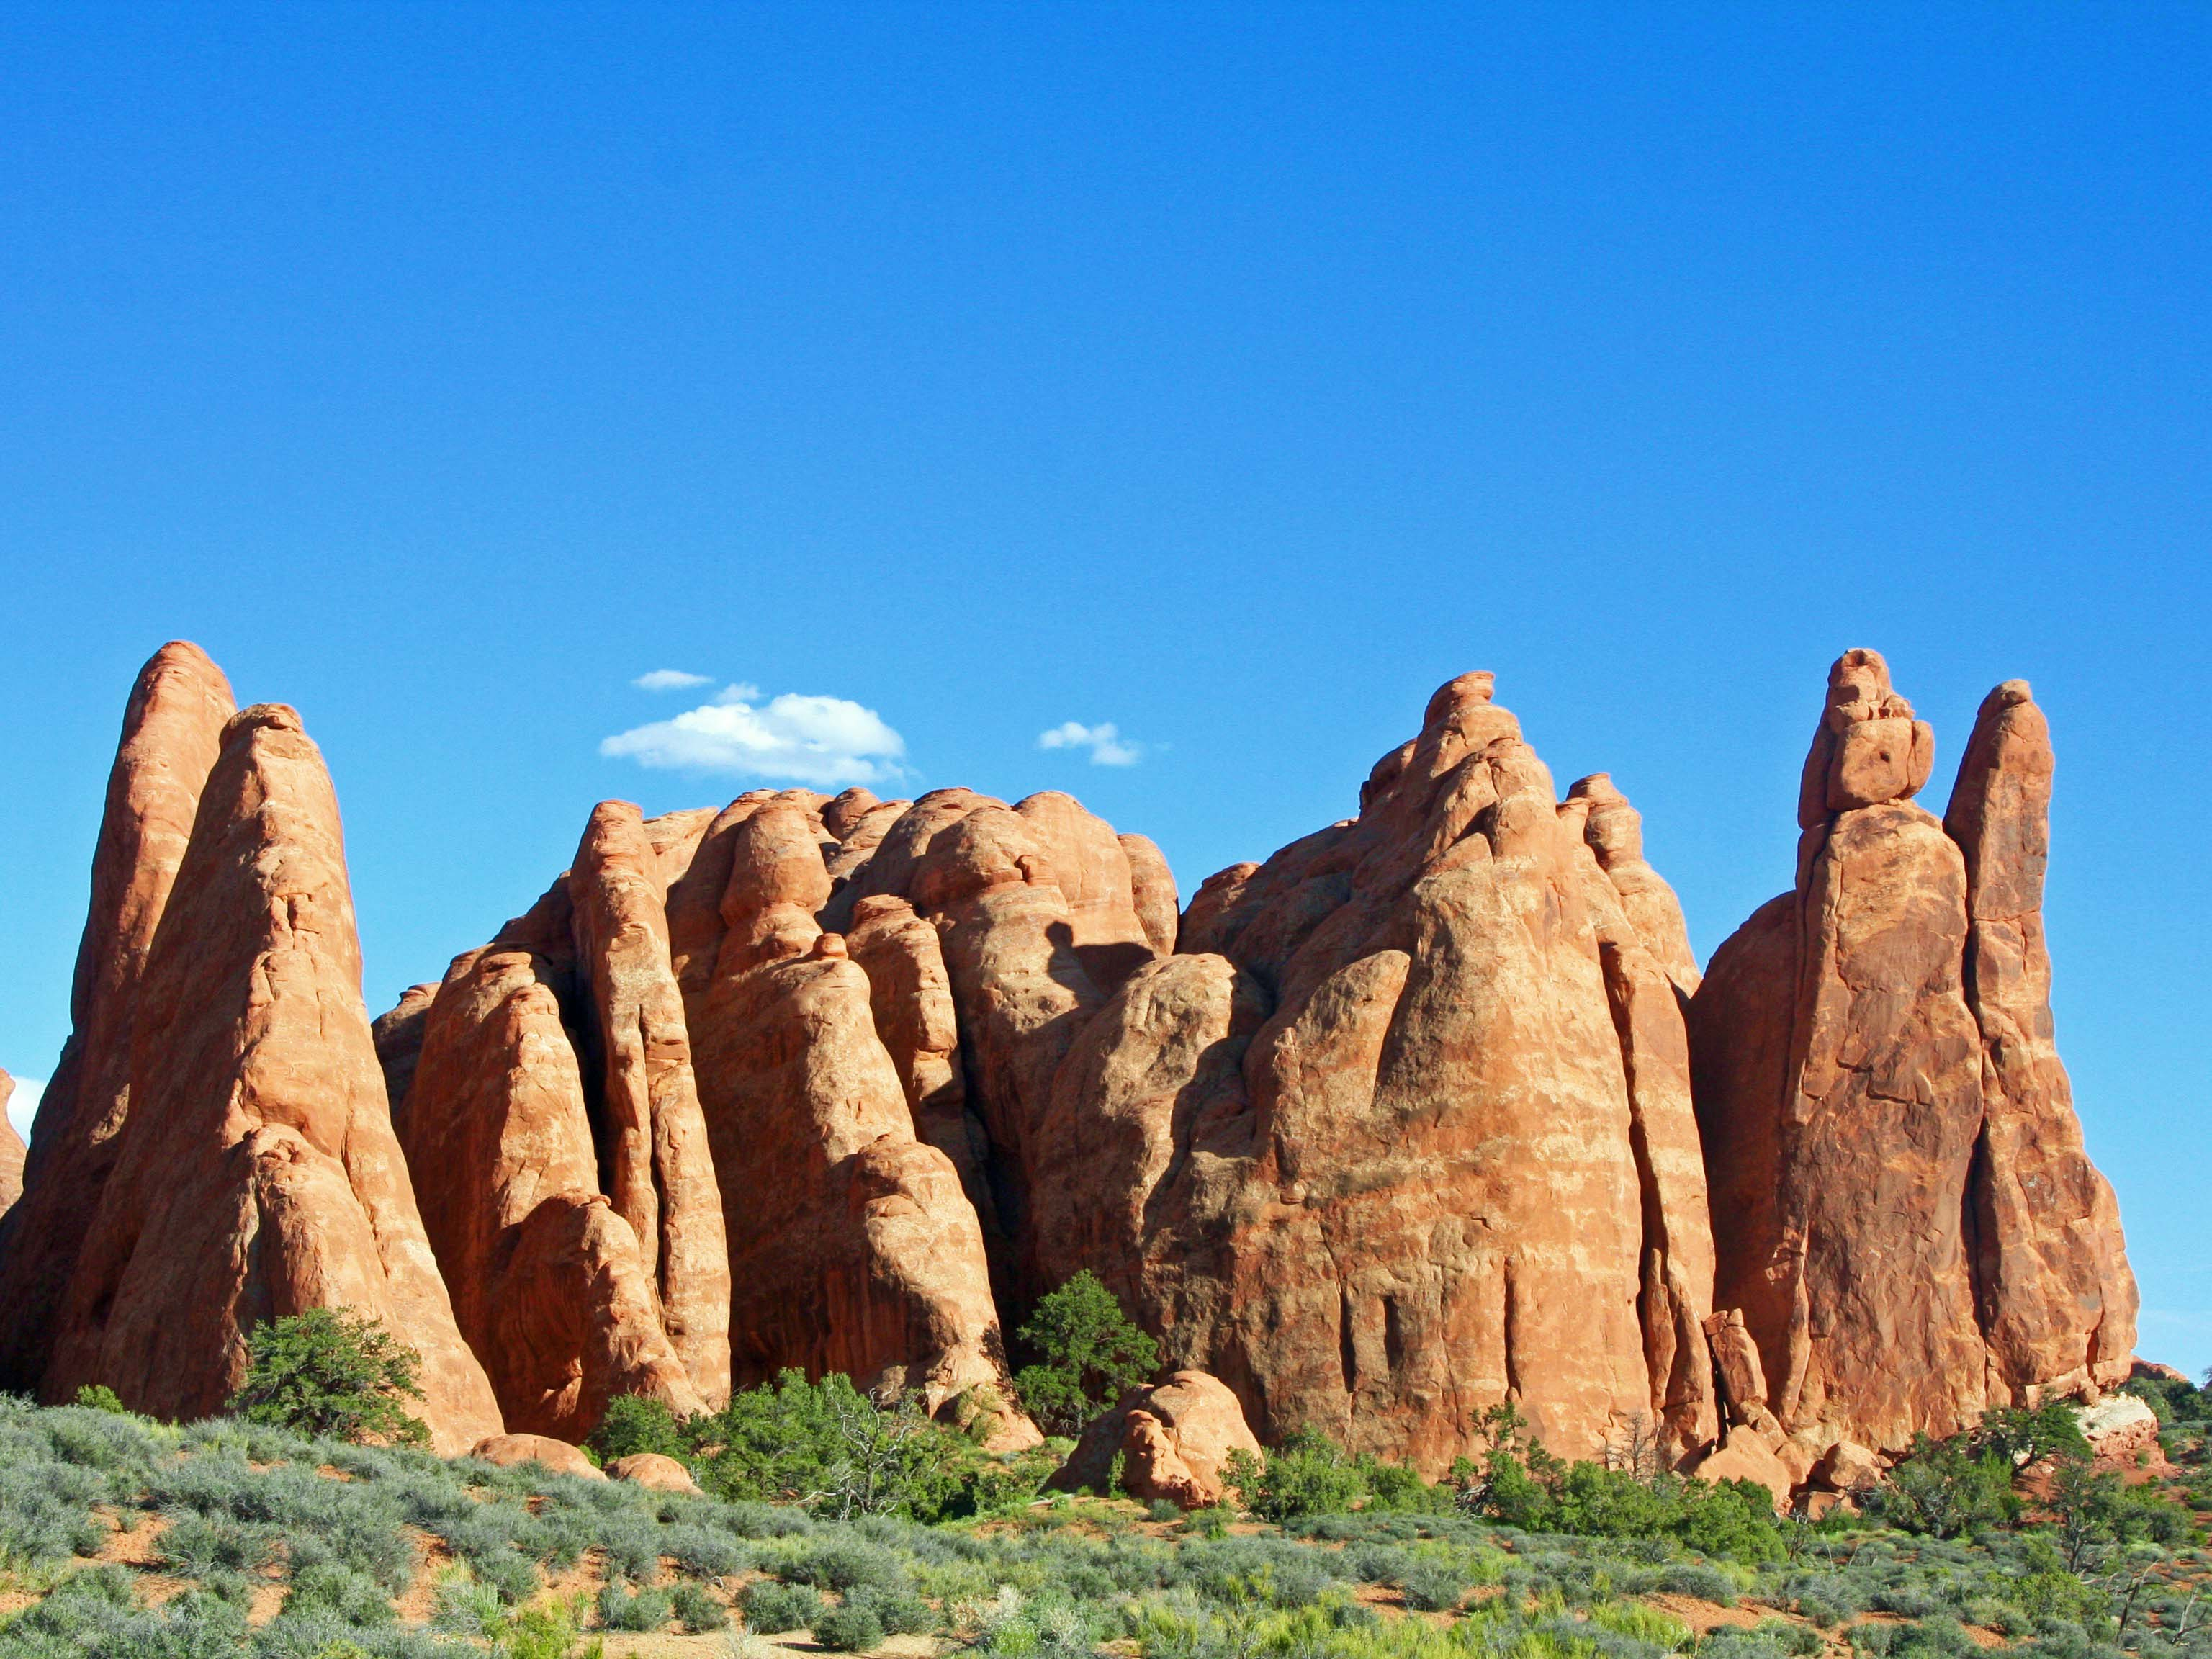 Photos of Arches National Park by Curt and Peggy Mekemson